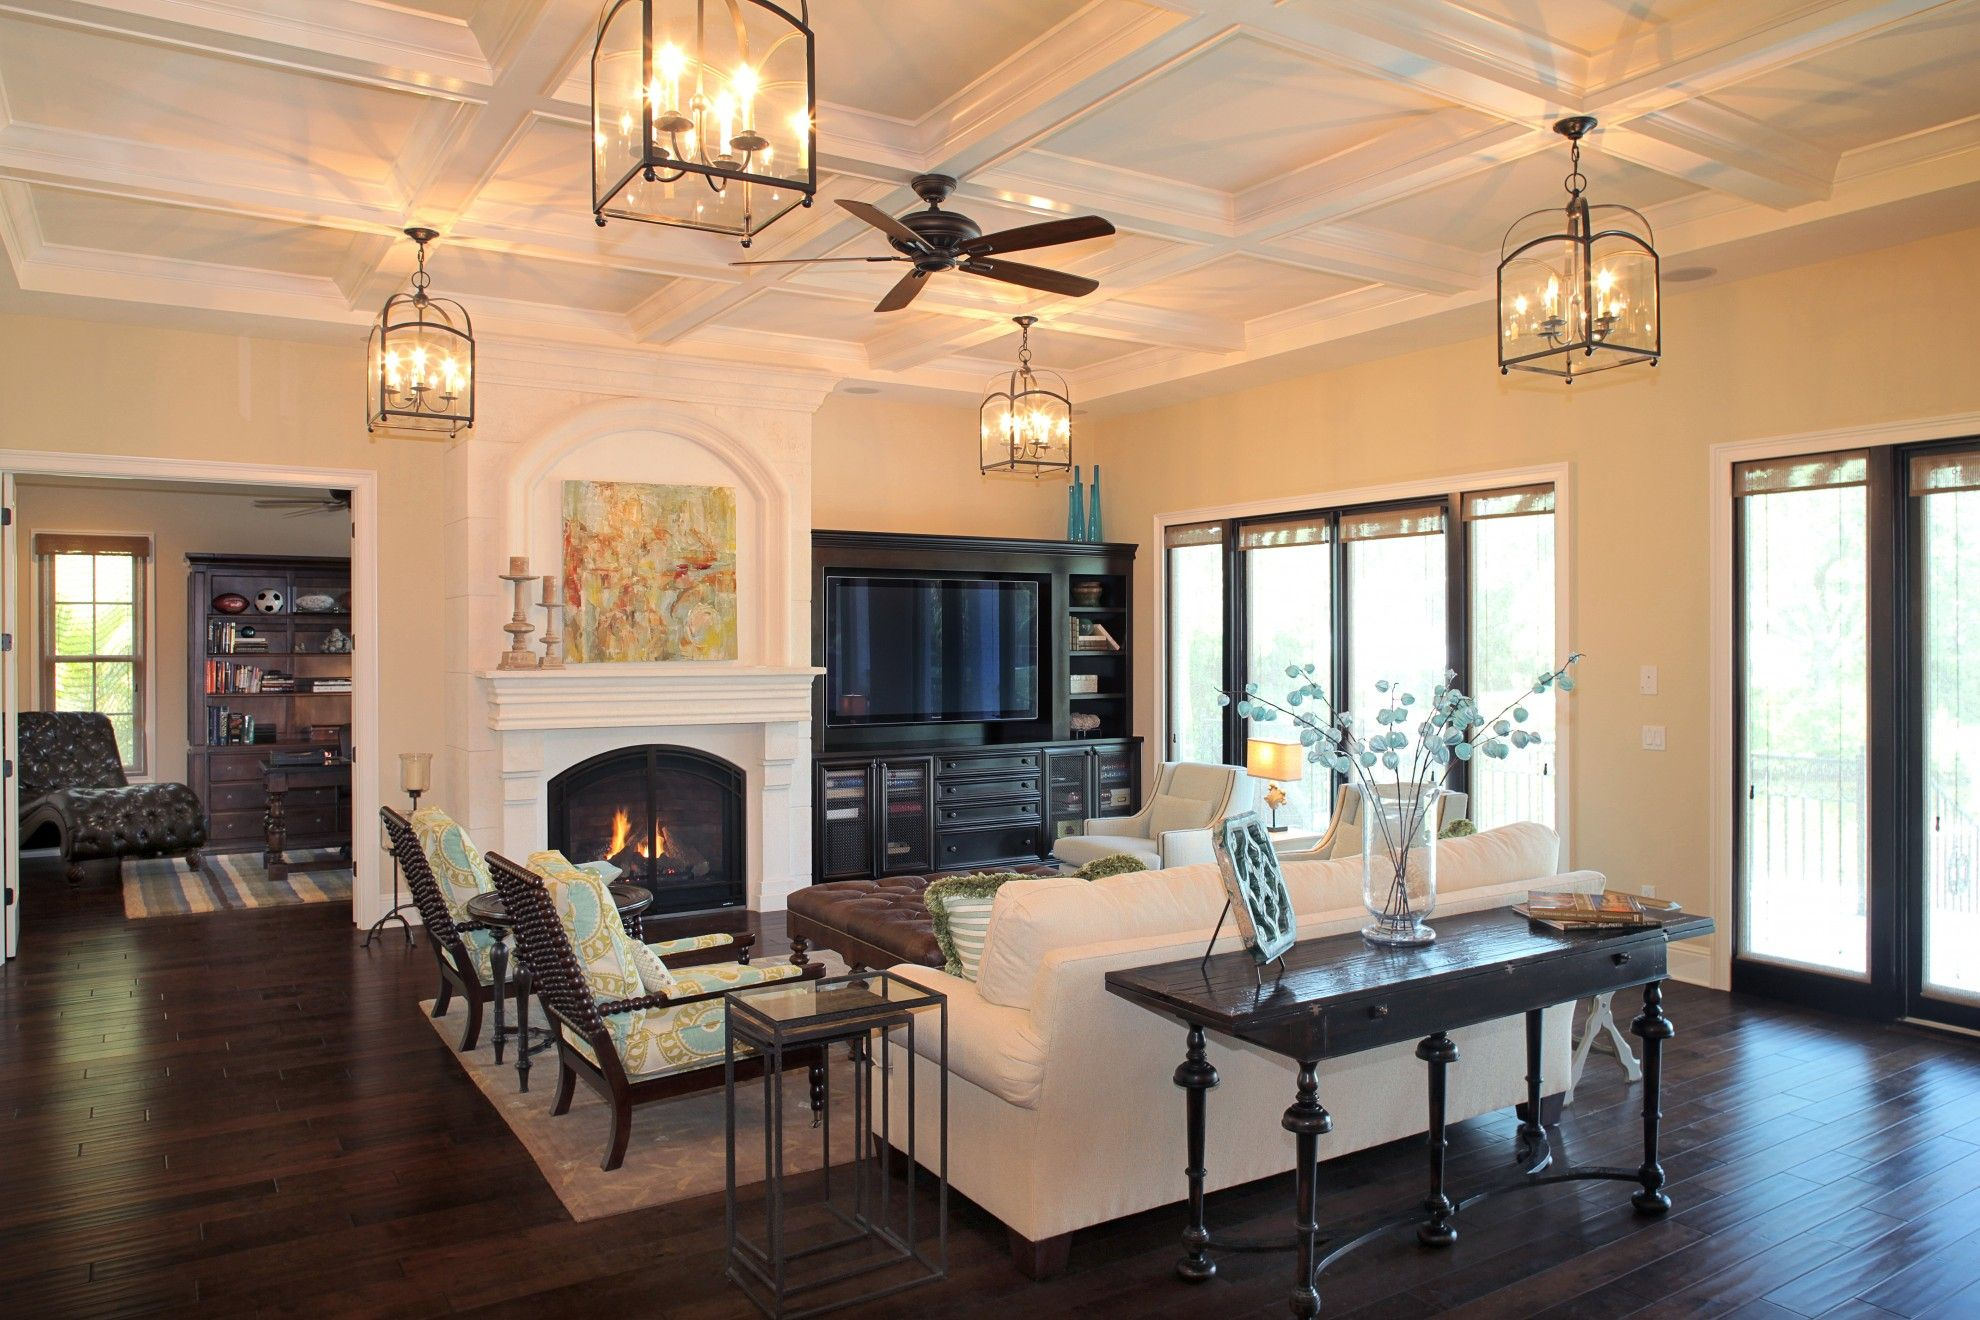 Our great room gallery is a collection of inspiring designs from